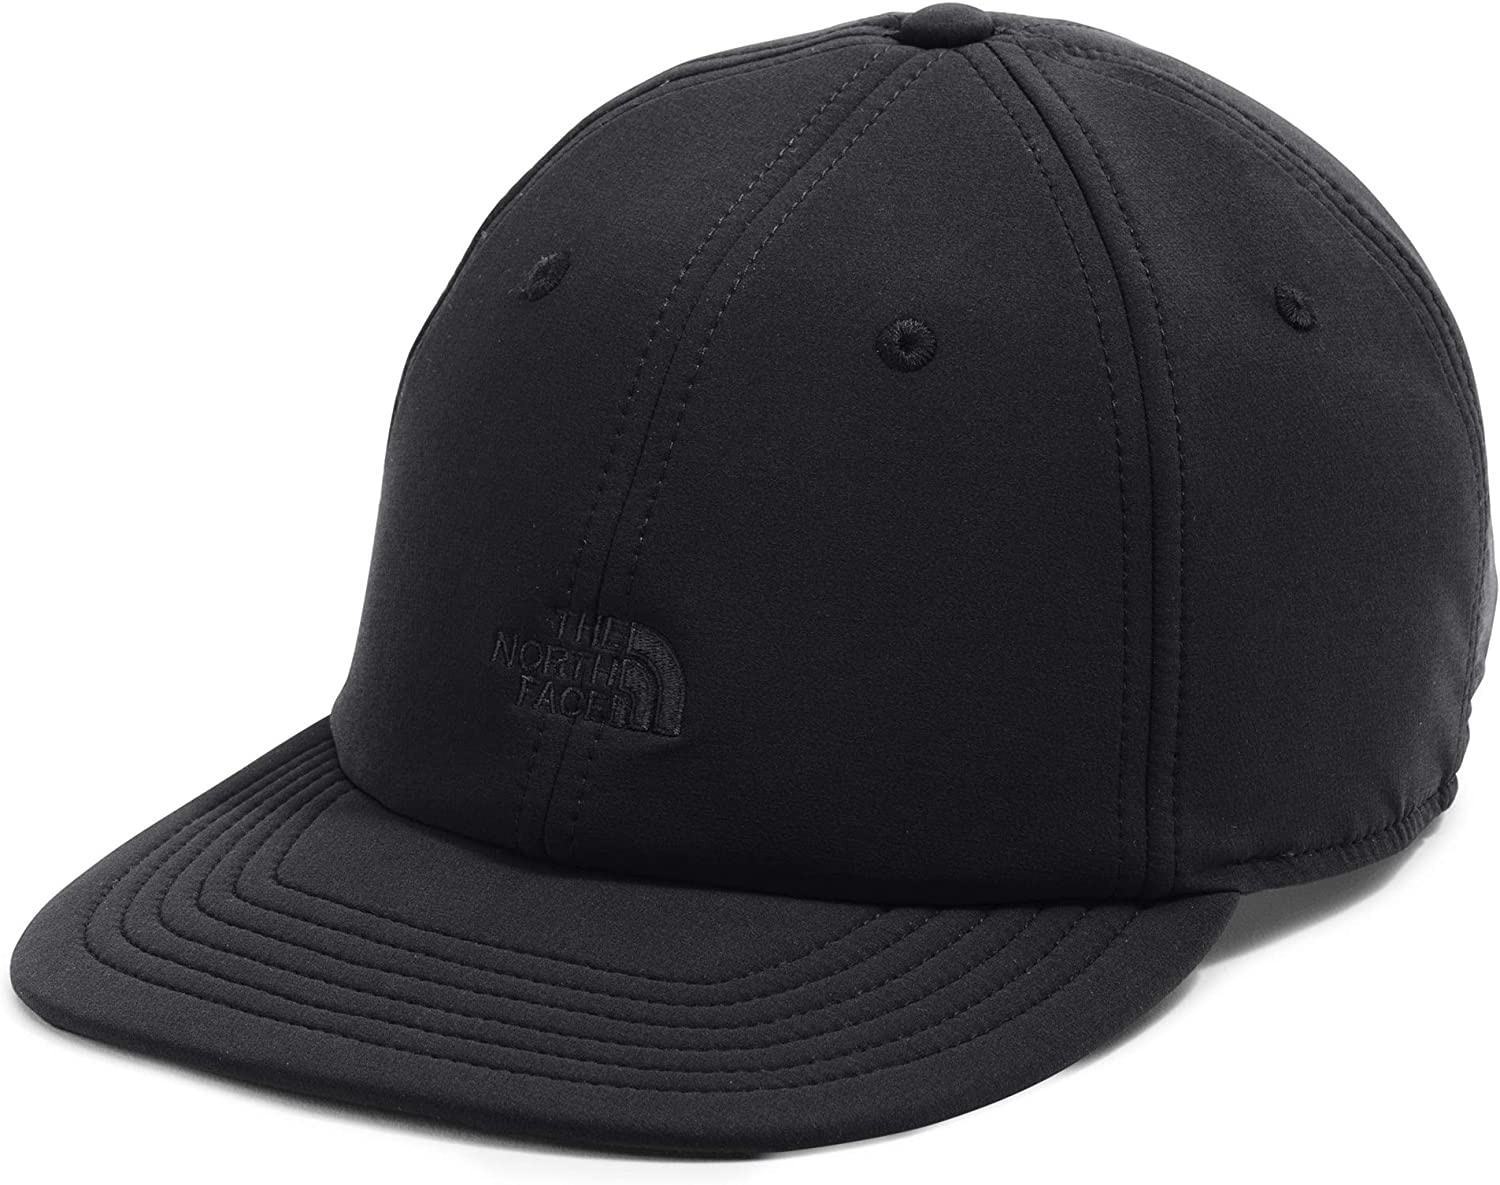 The North Face Tech Norm Hat